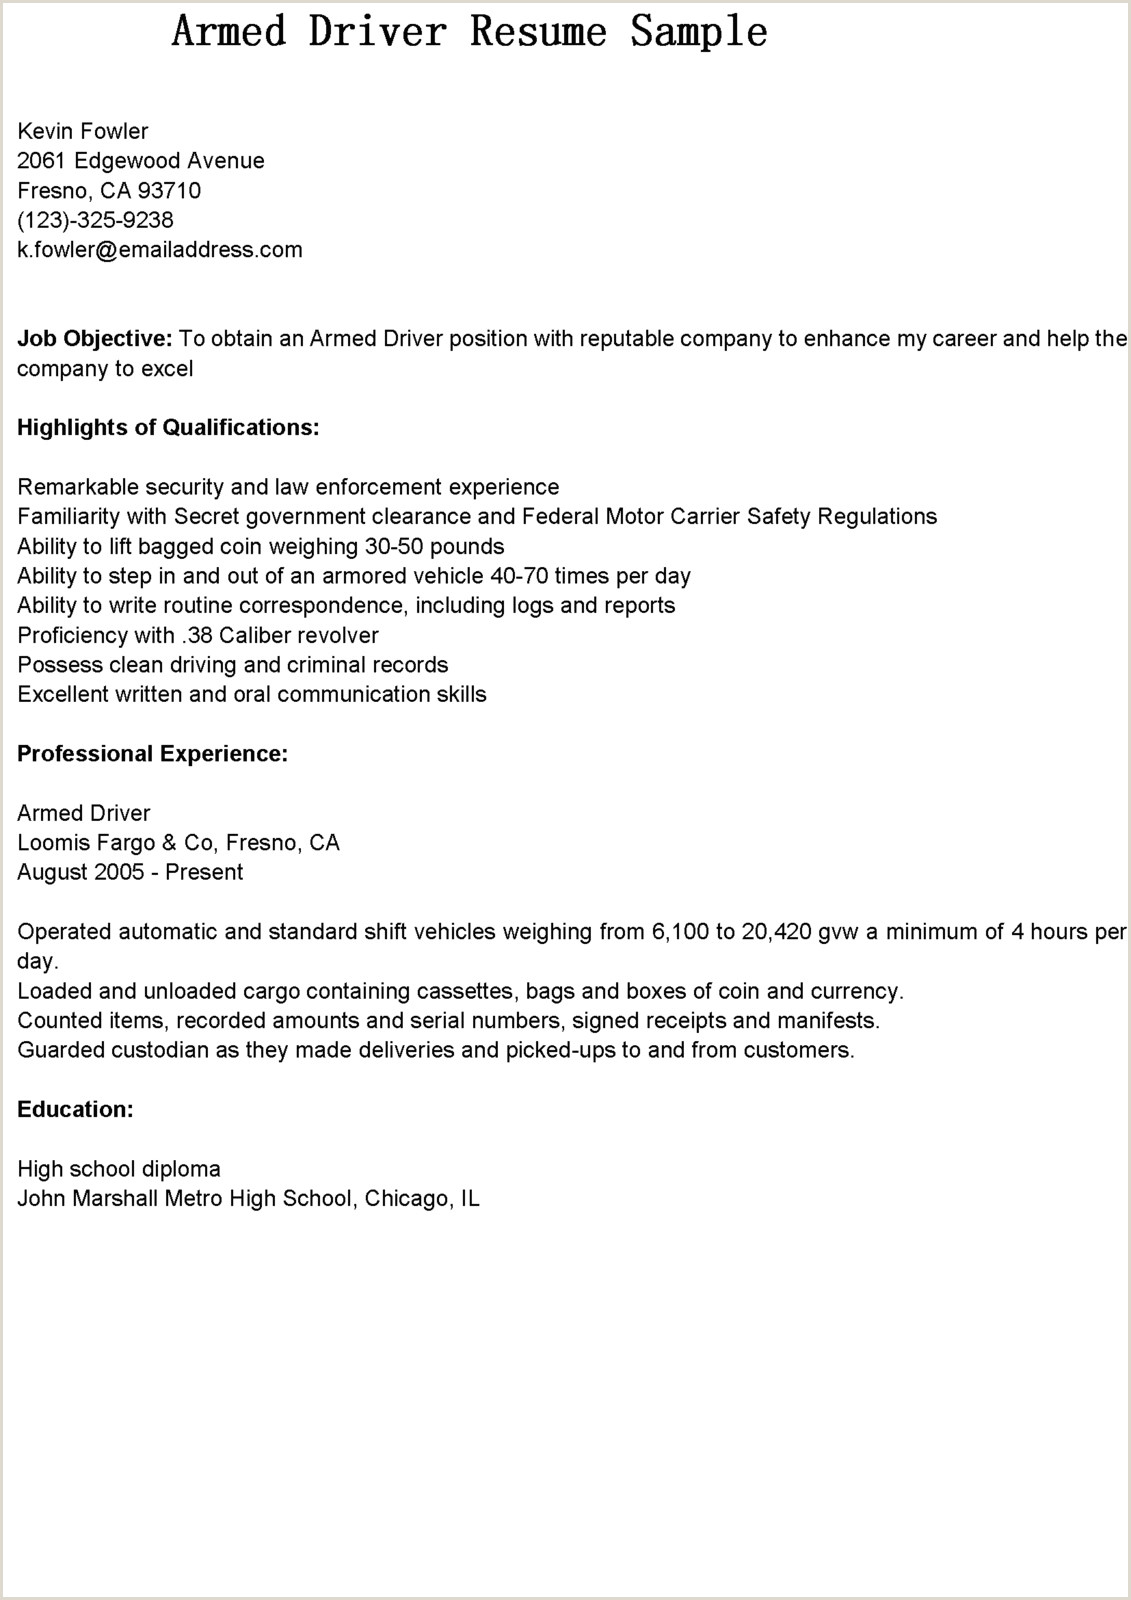 Ups Driver Resume Sample Following An Example to Write Your Own Expository Essay